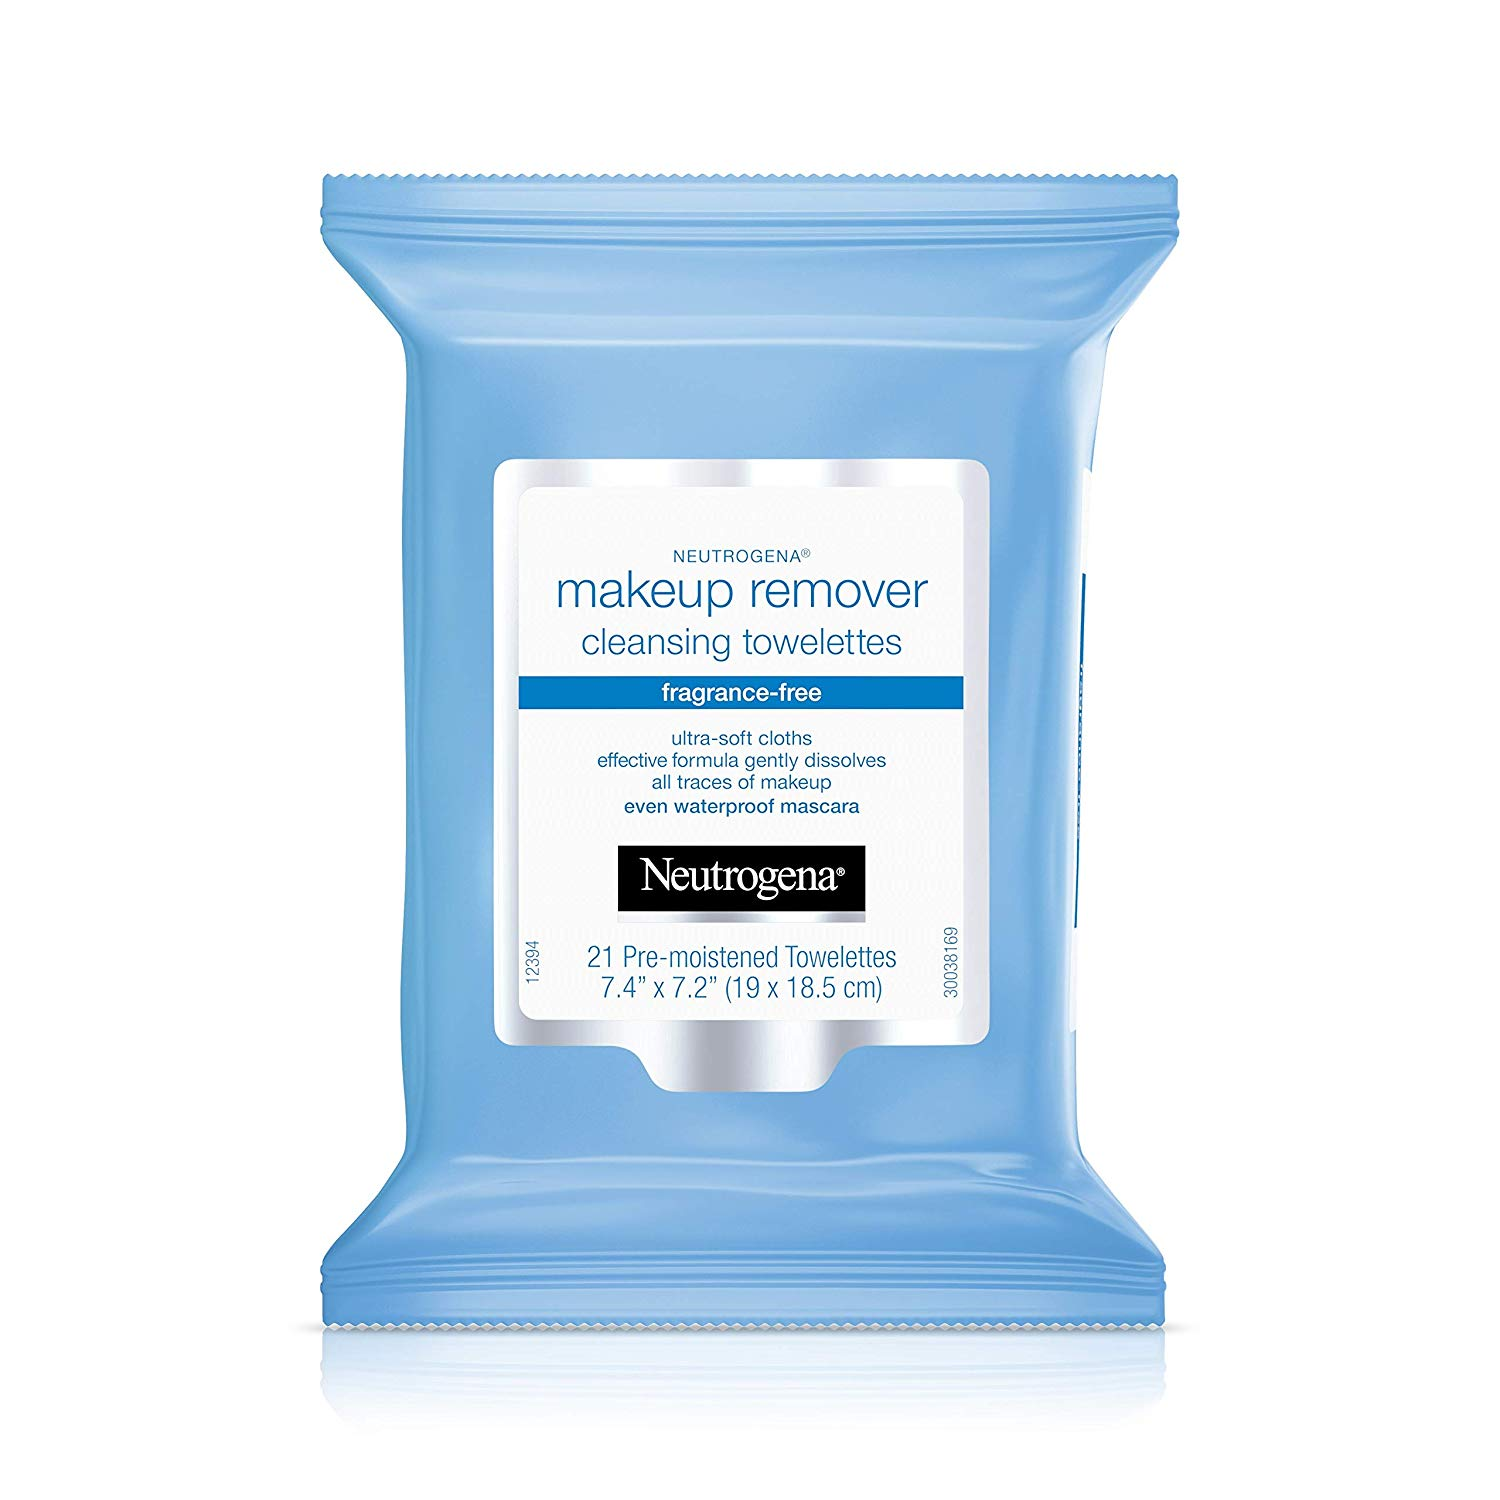 Neutrogena Makeup Remover Towelettes - These are self explanatory. But I love to put a pack of these travel sized wipes in my carry on and take off my makeup mid-flight if I had any on beforehand.Under $6 on Amazon